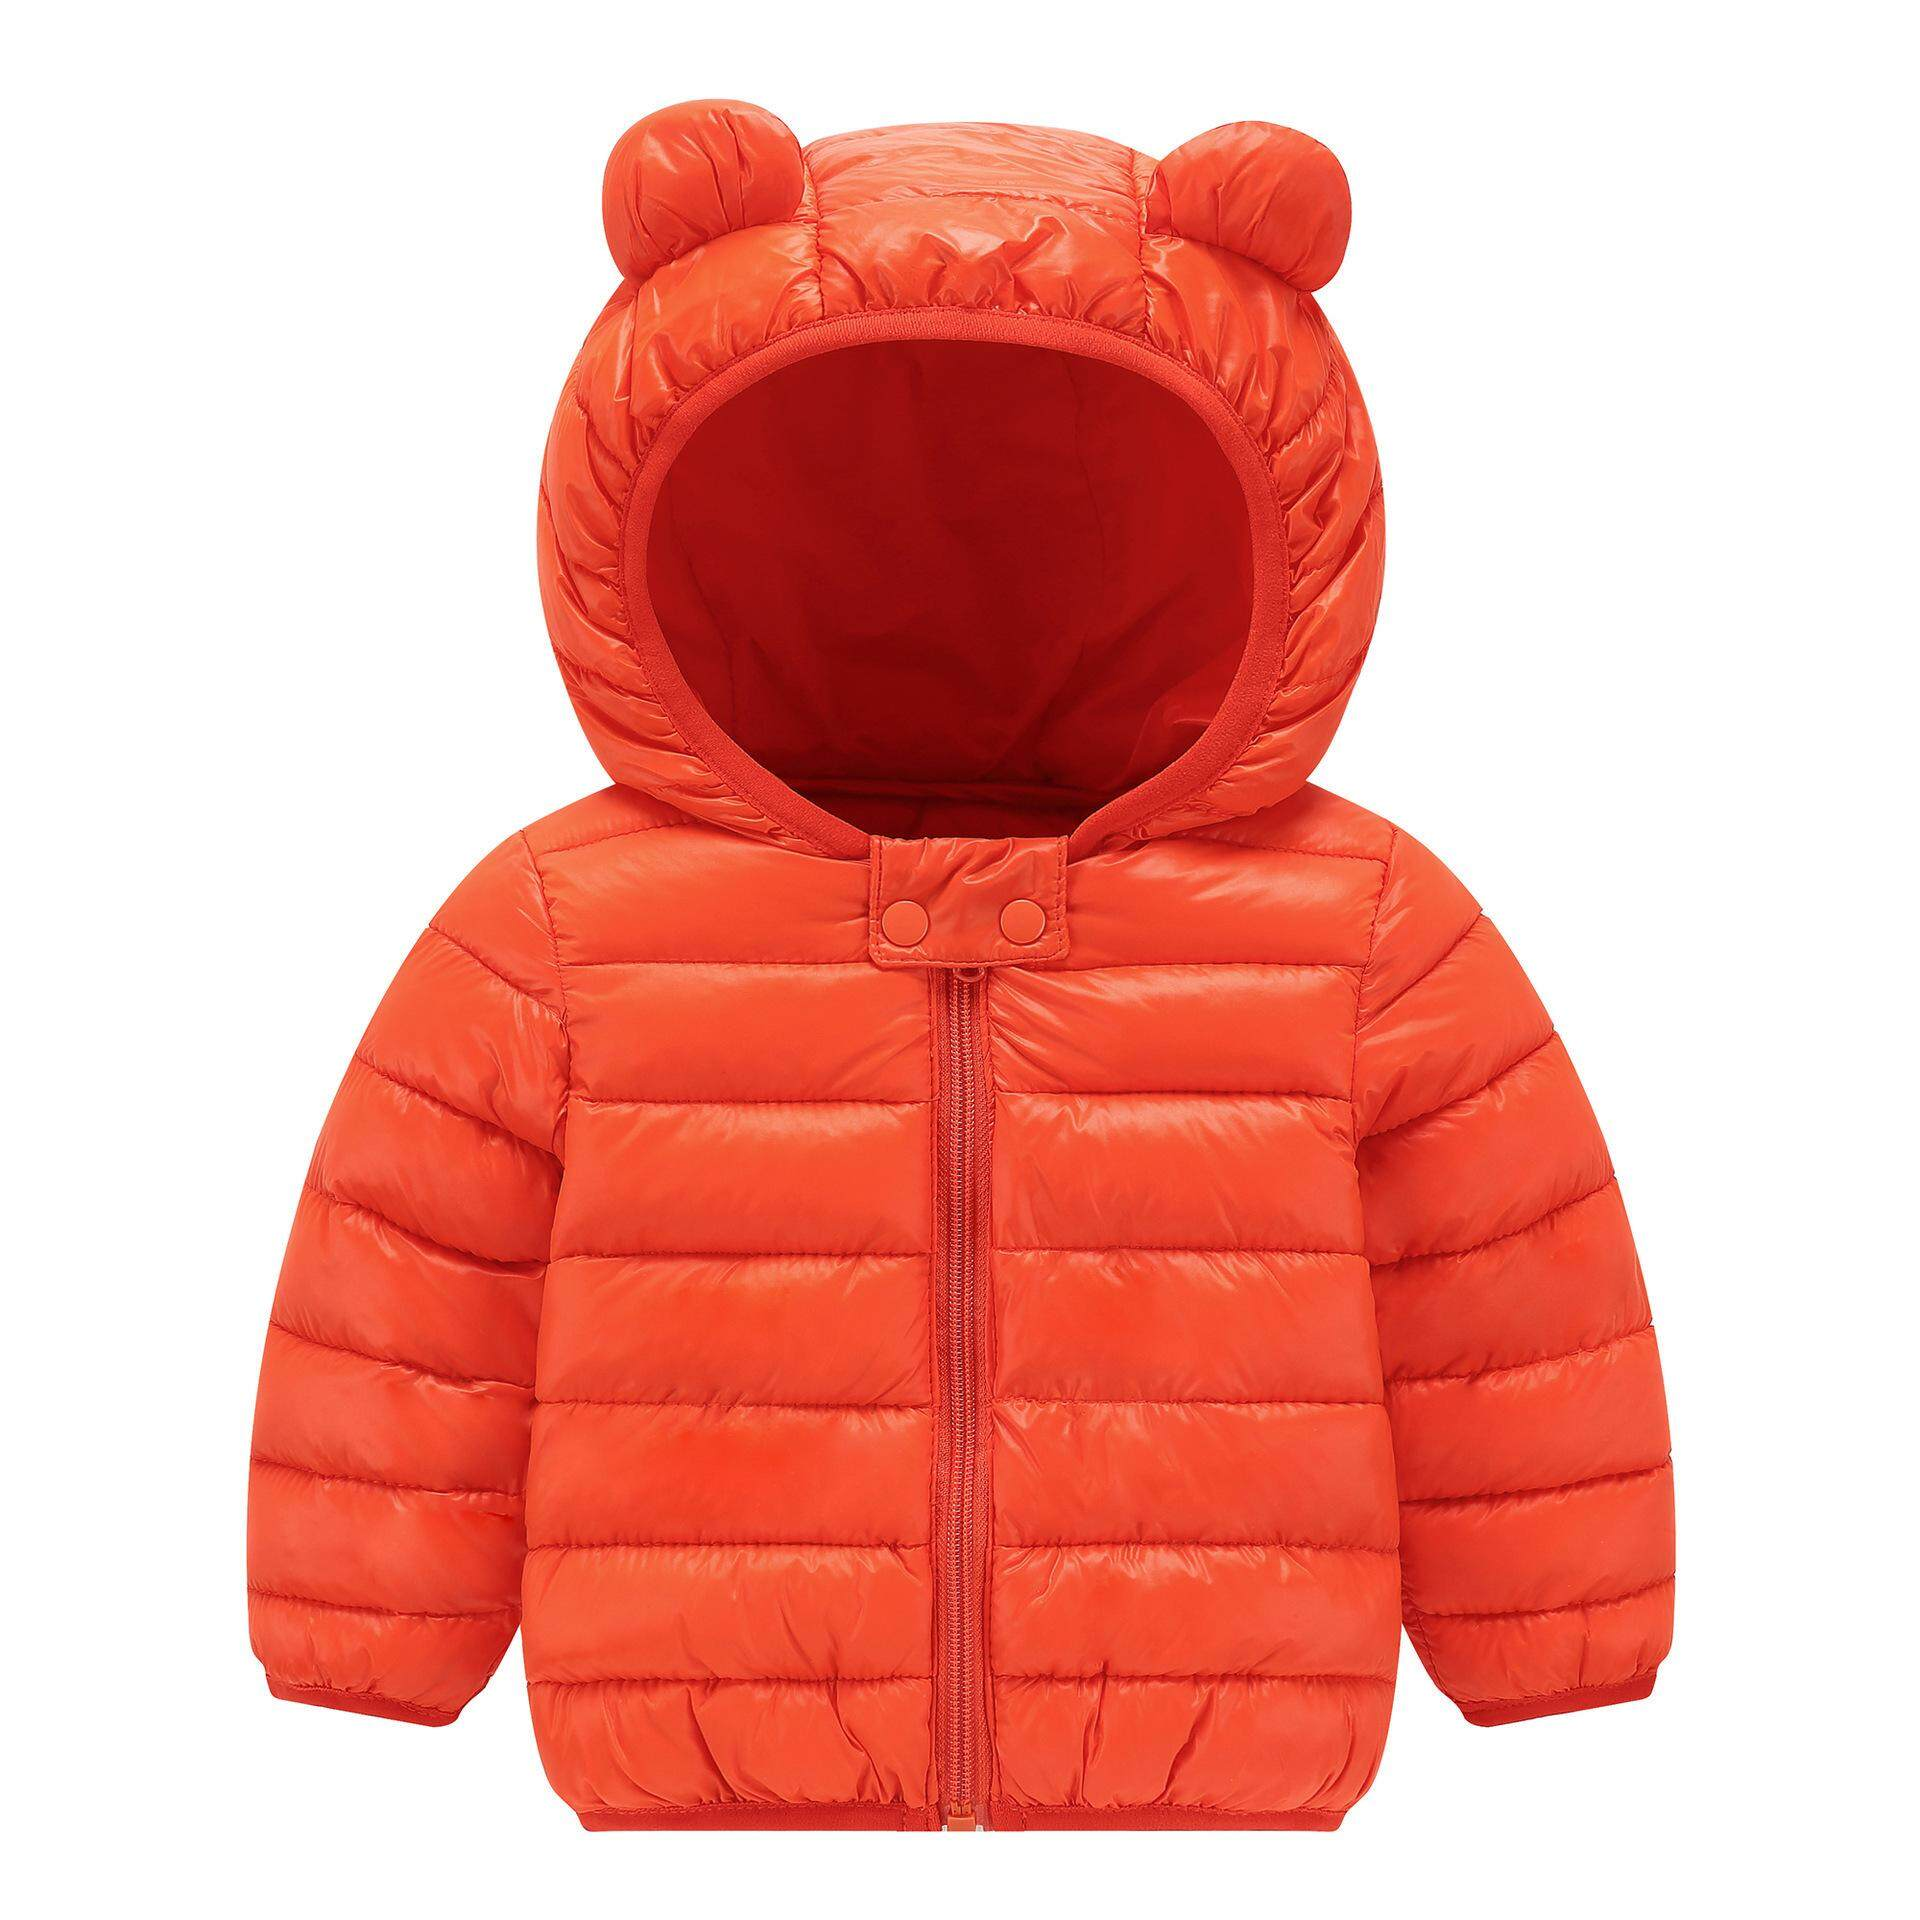 dd4c6e73e Kids Toddler Boys Jacket Coat for Children Outerwear Clothing Casual Baby  Girls Clothes Autumn Winter Parkas